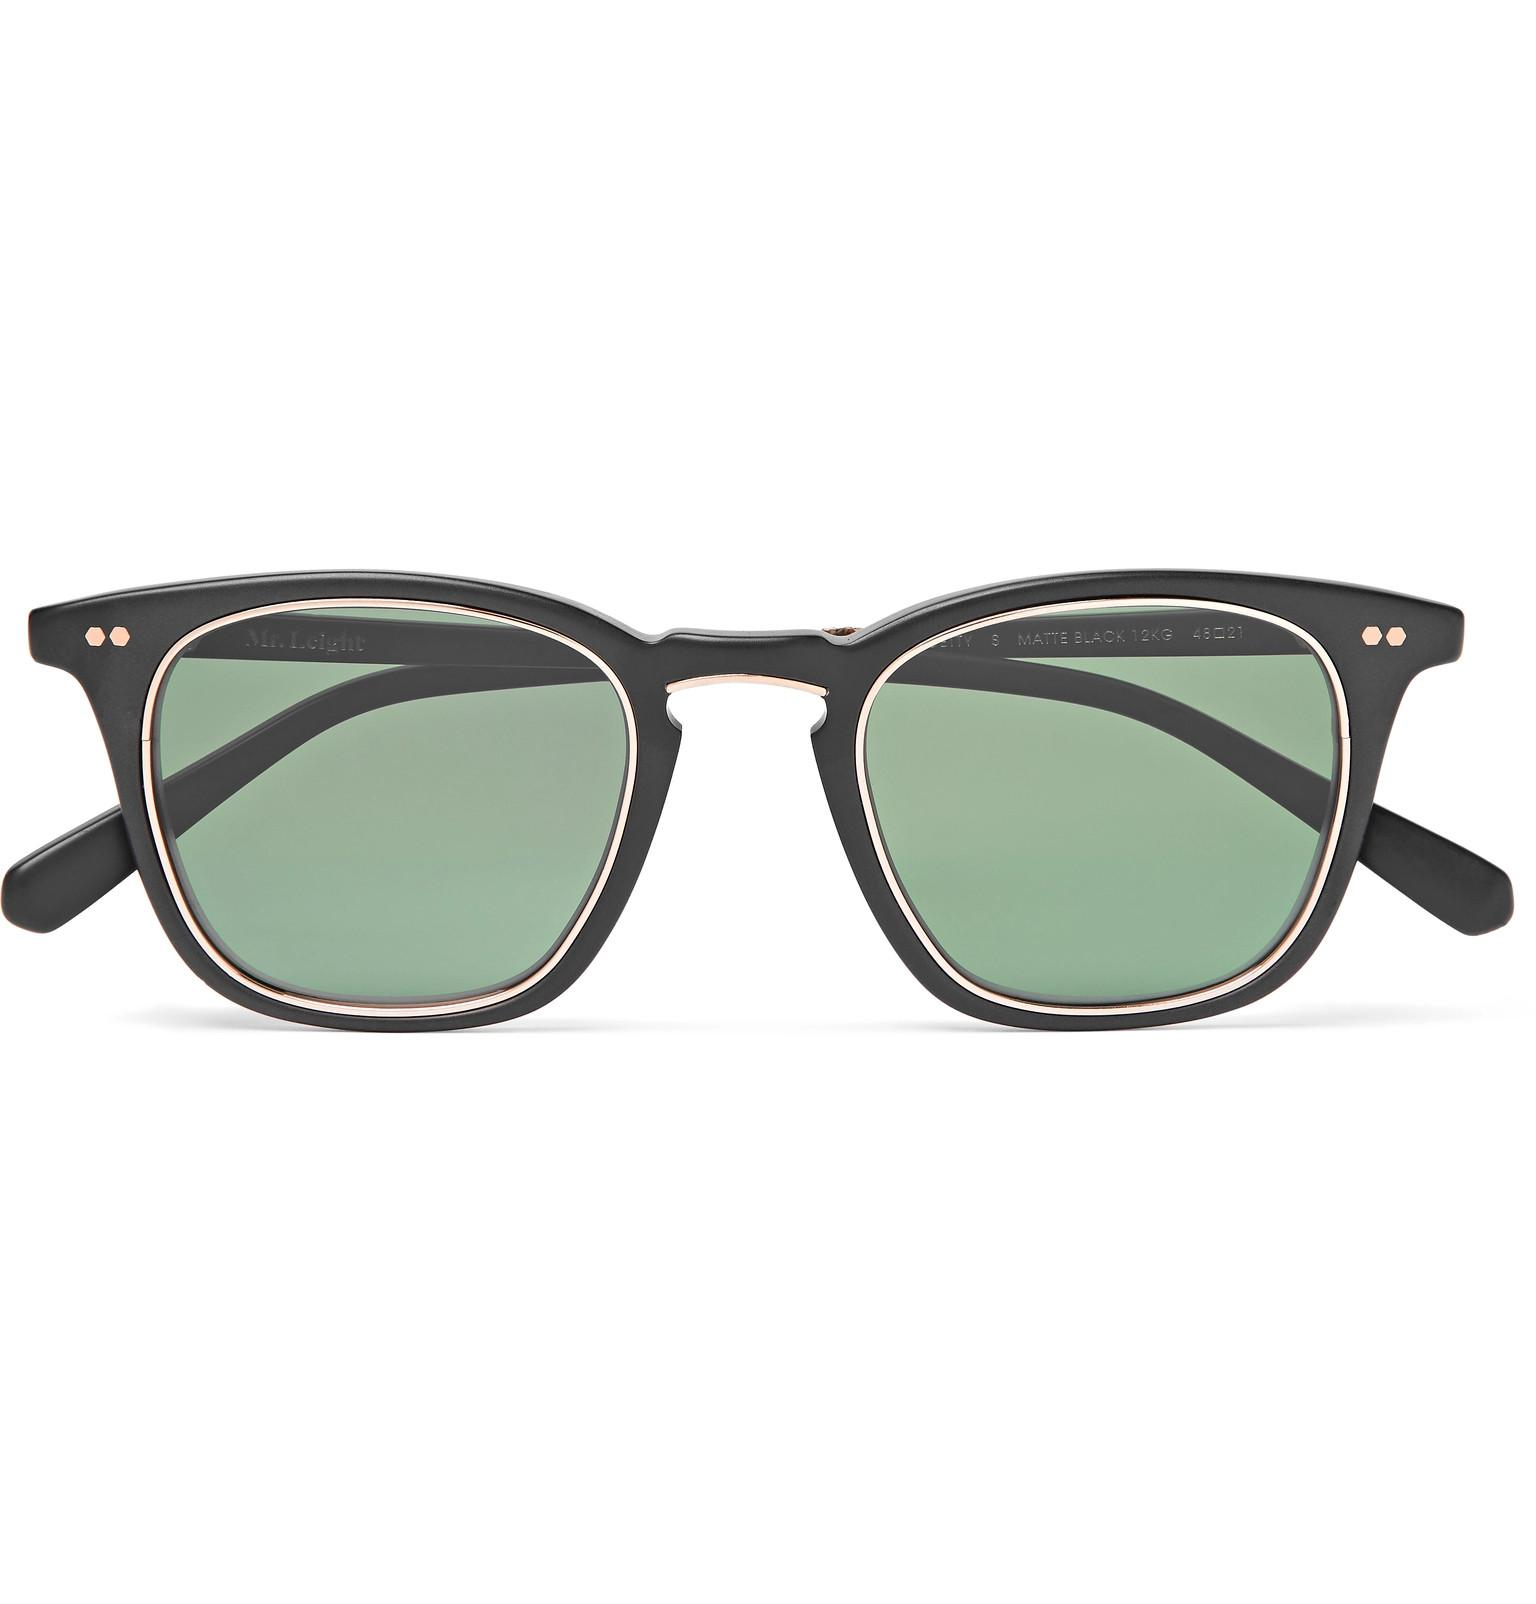 ac52359355659 Mr. Leight Getty S Square-frame Acetate Sunglasses in Black for Men ...